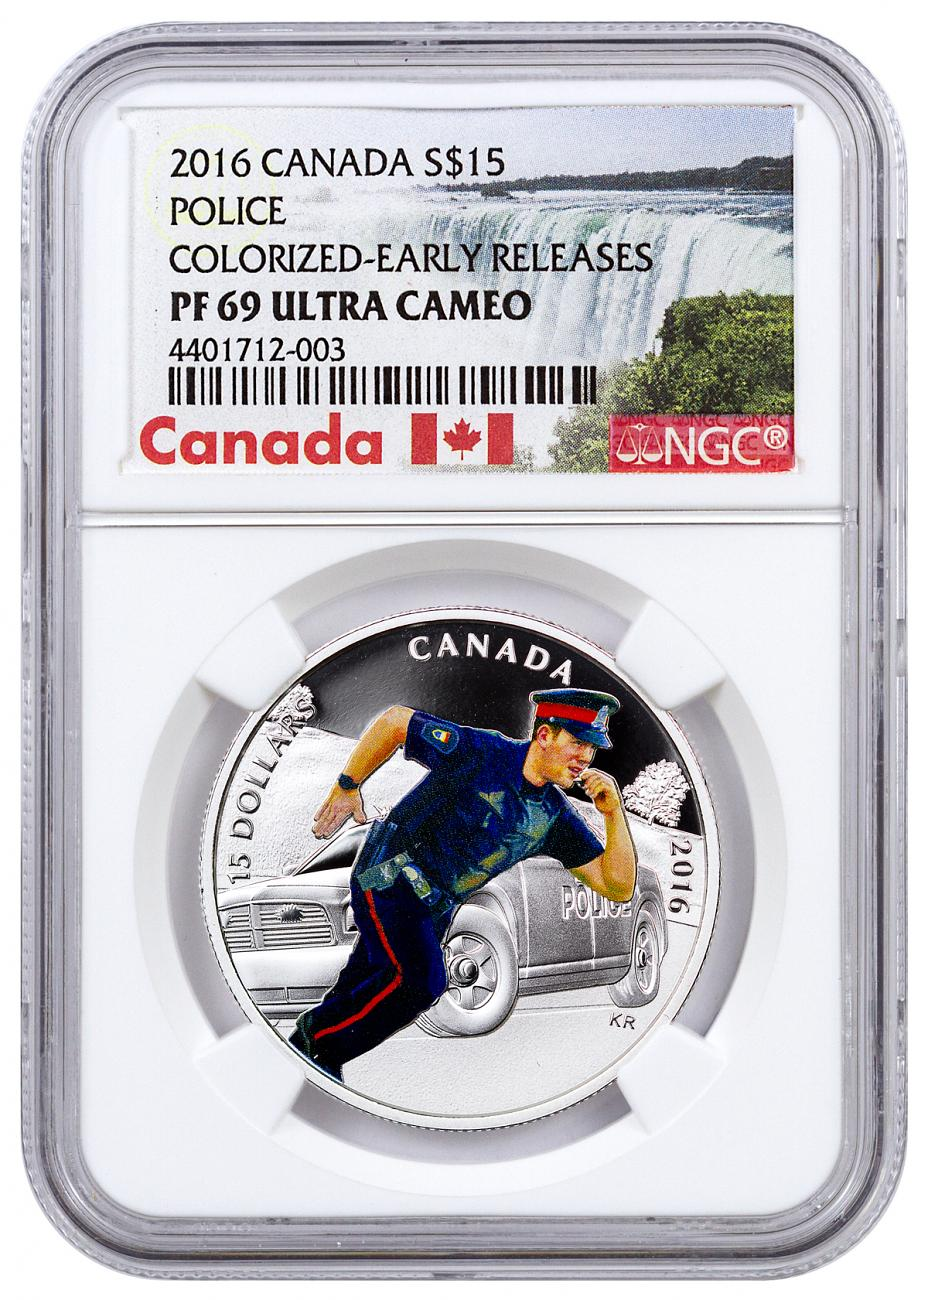 2016 Canada $15 3/4 oz. Colorized Proof Silver National Heroes - Police - NGC PF69 UC Early Releases (Exclusive Canada Label)